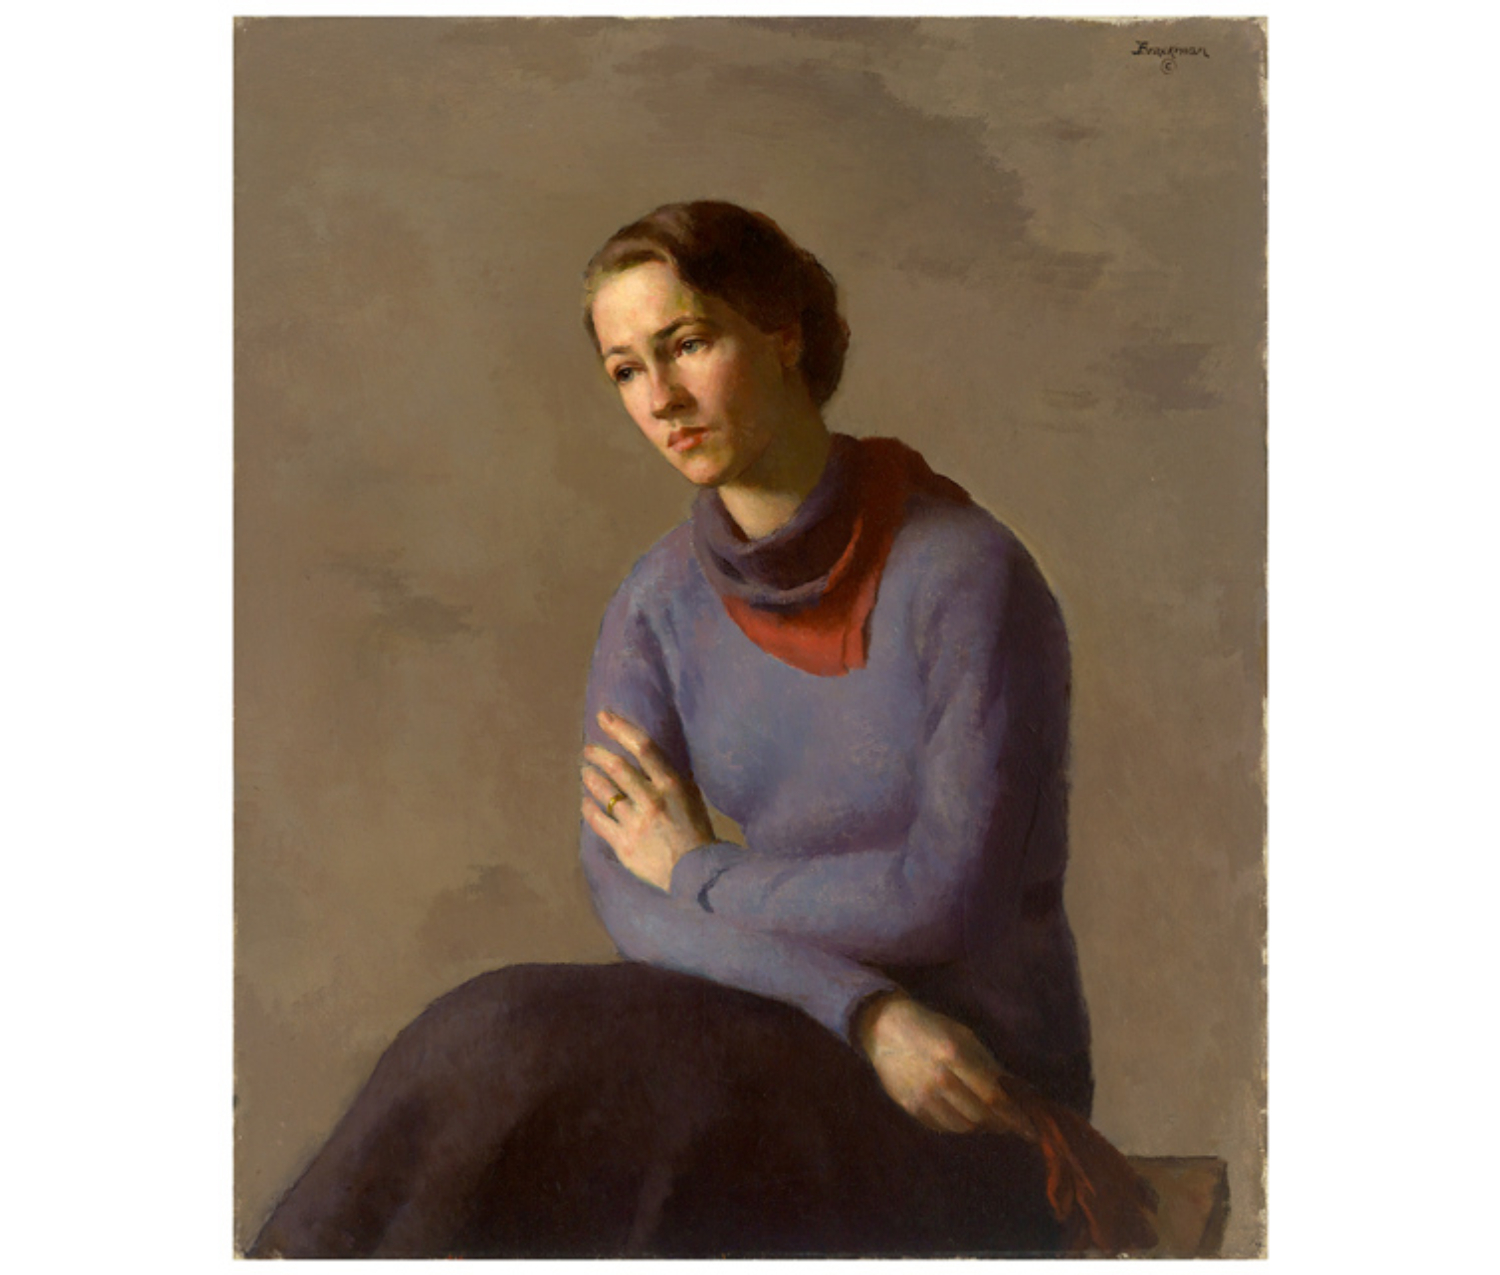 Anne Morrow Lindbergh, in a dark skirt and violet sweater with a red and purple scarf around her neck and her brown hair pulled back, looks sadly down. She is seated in front of a taupe background and holds a pair of red gloves in one hand.